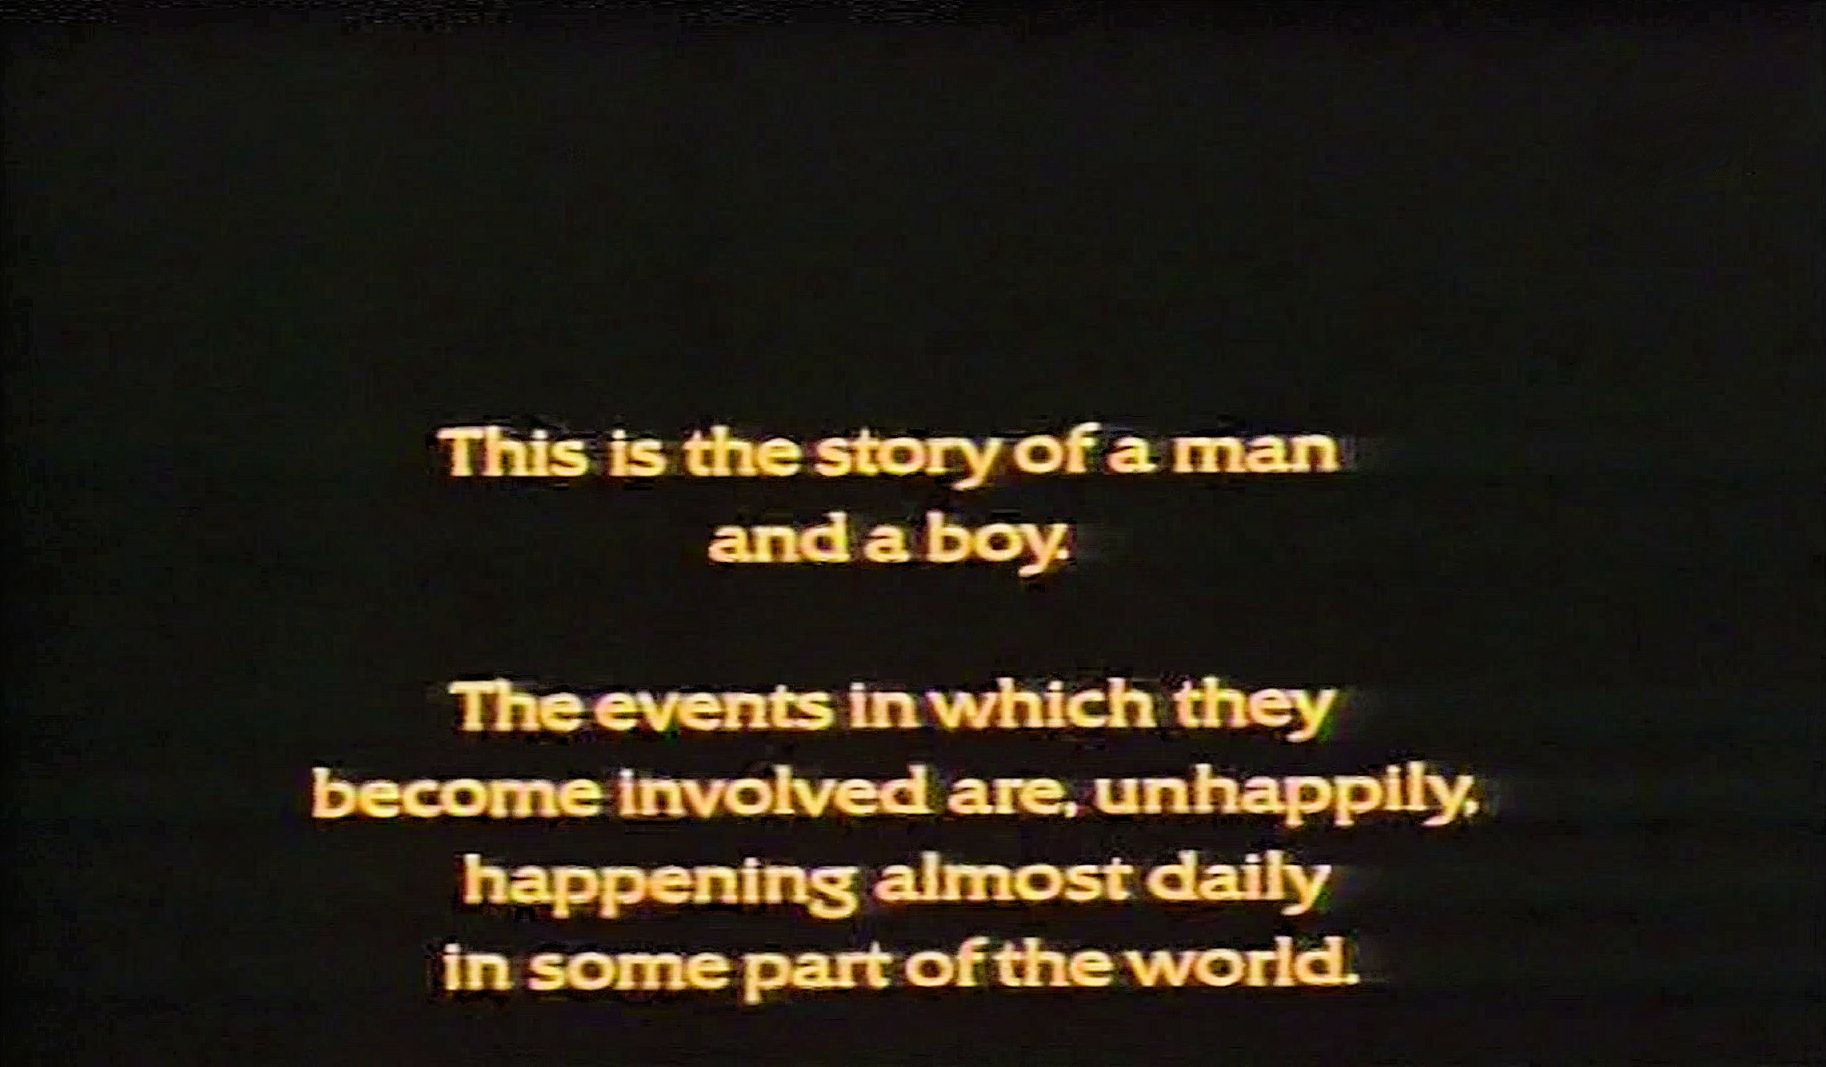 Main title from Paper Tiger (1975) (1).  'This is the story of a man and a boy.  The events in which they become involved are unhappily, happening almost daily in some part of the world.'